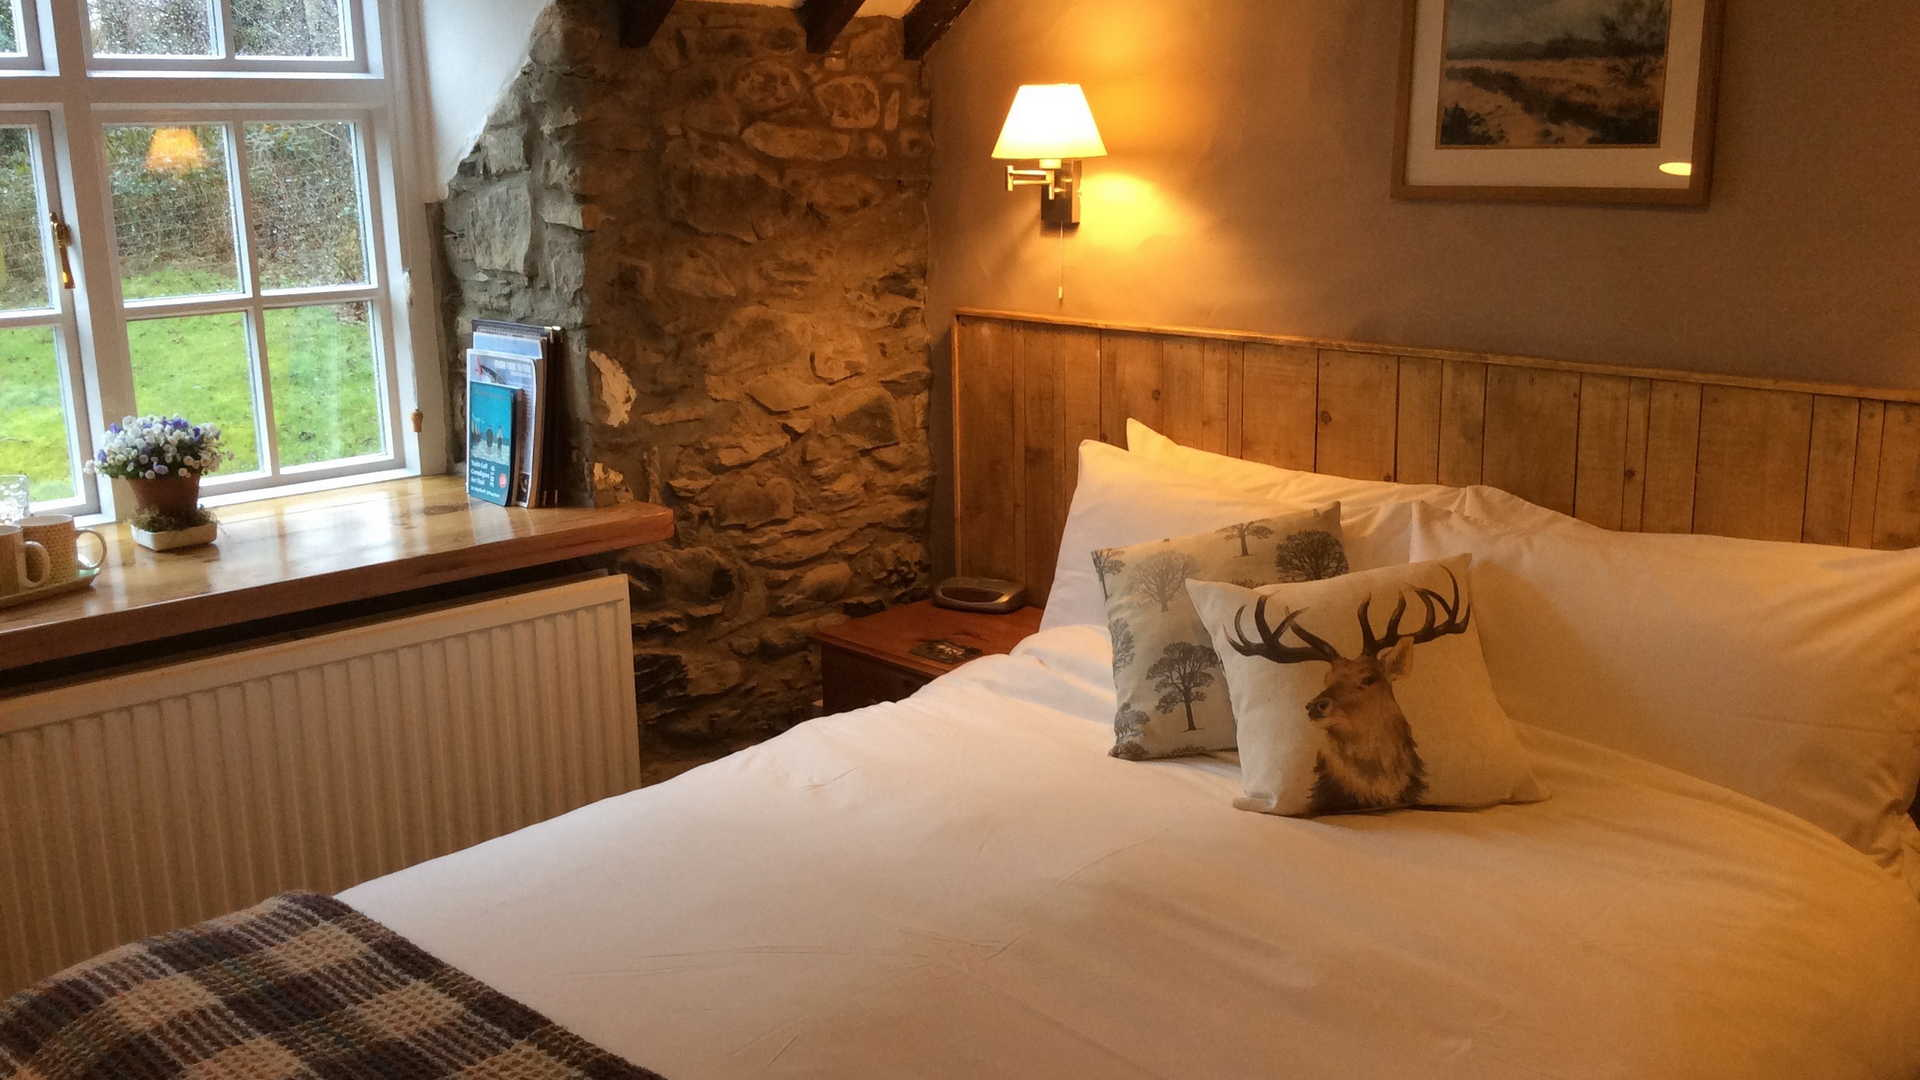 Guest House Mid Wales, Gay Friendly B&B Aberystwyth